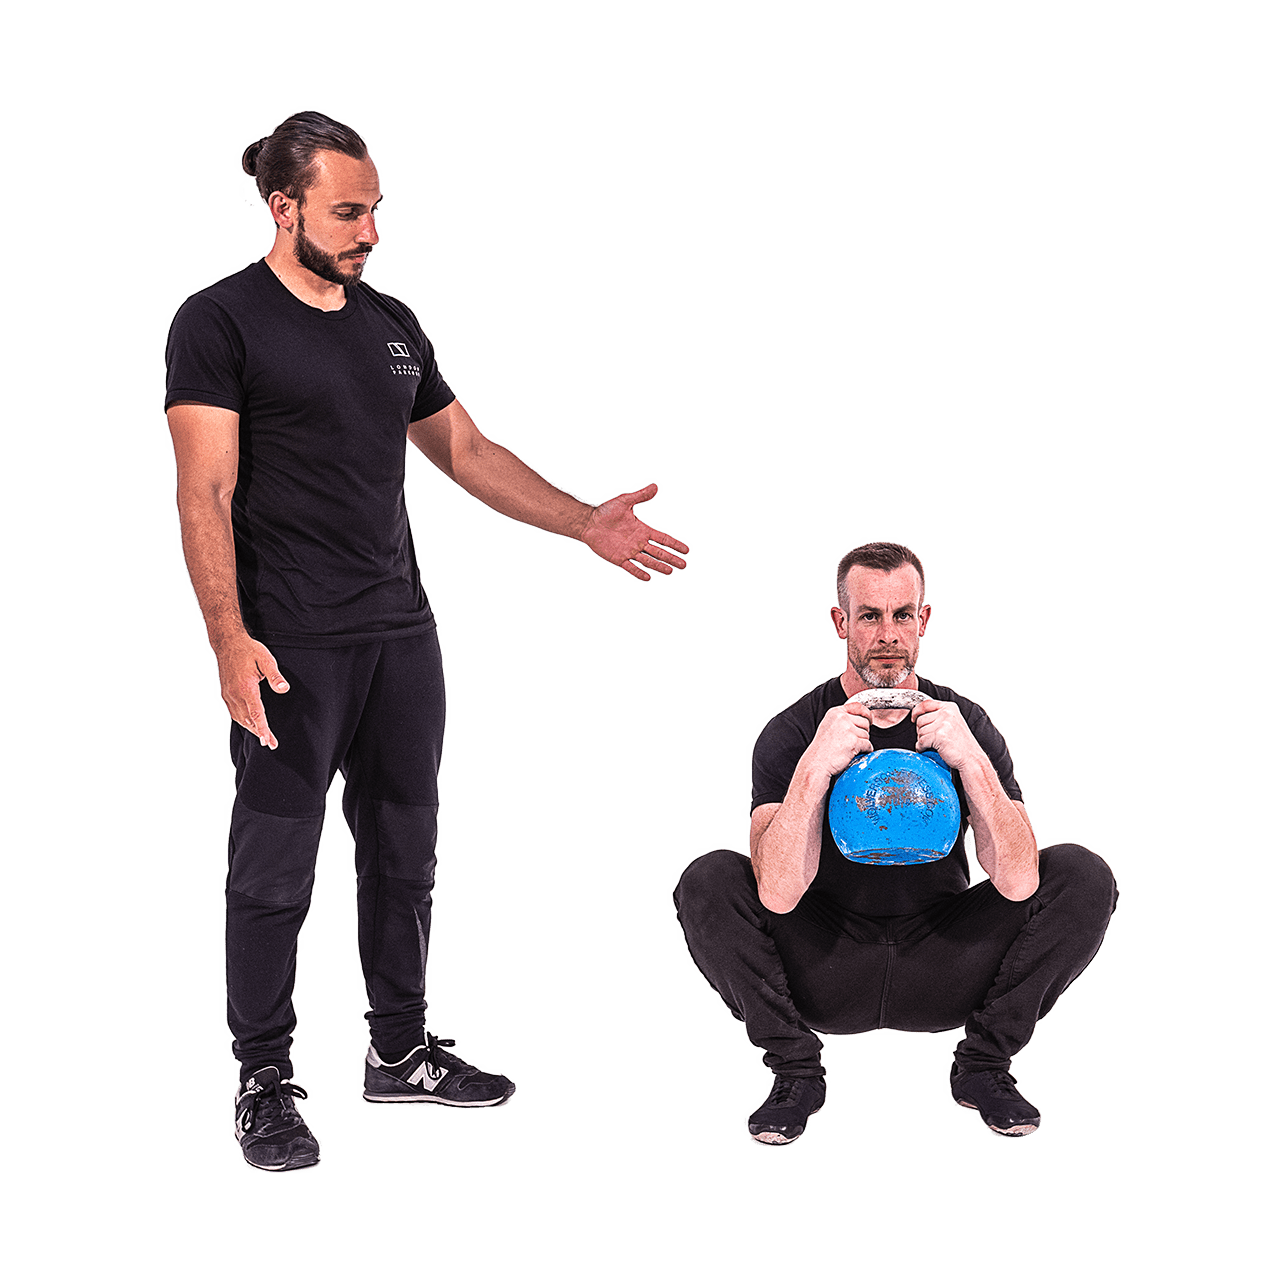 Kevin teaches Andy a kettlebell squat.